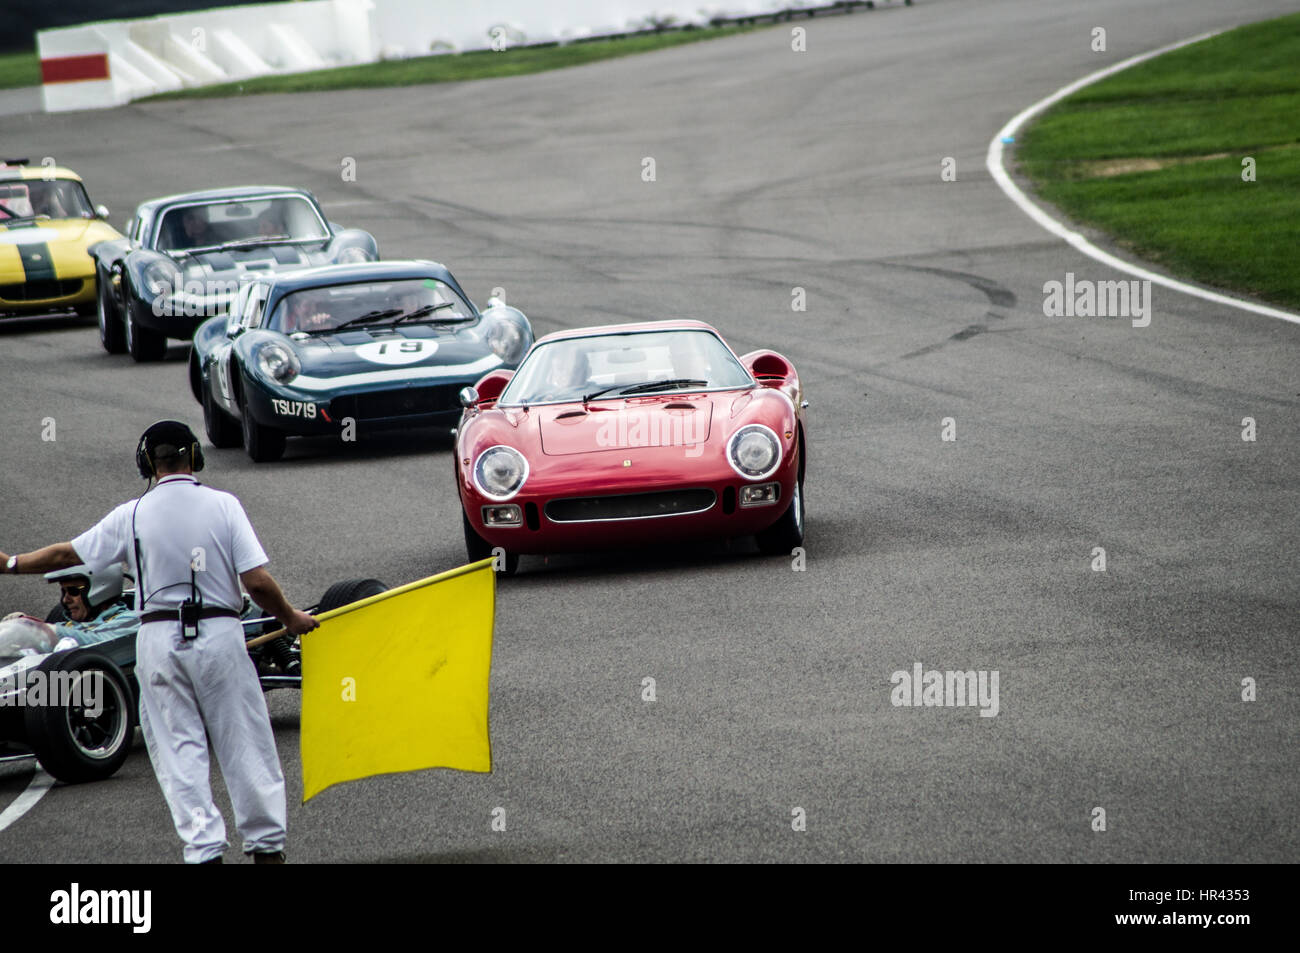 Race cars on track at Goodwood Revival, coming into pit lane after ...